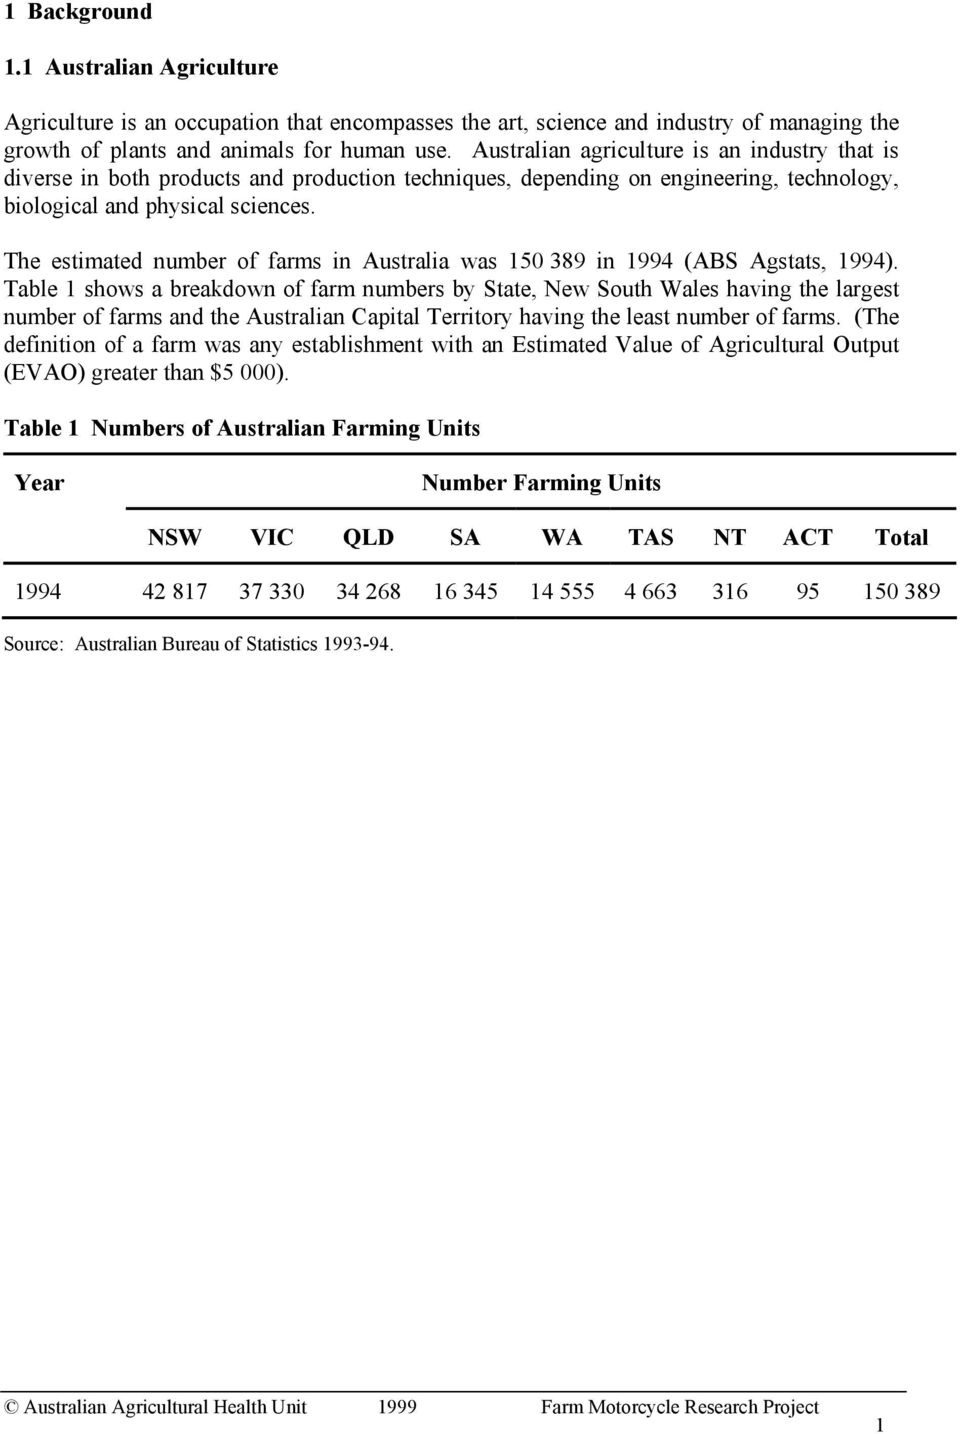 The estimated number of farms in Australia was 150 389 in 1994 (ABS Agstats, 1994).